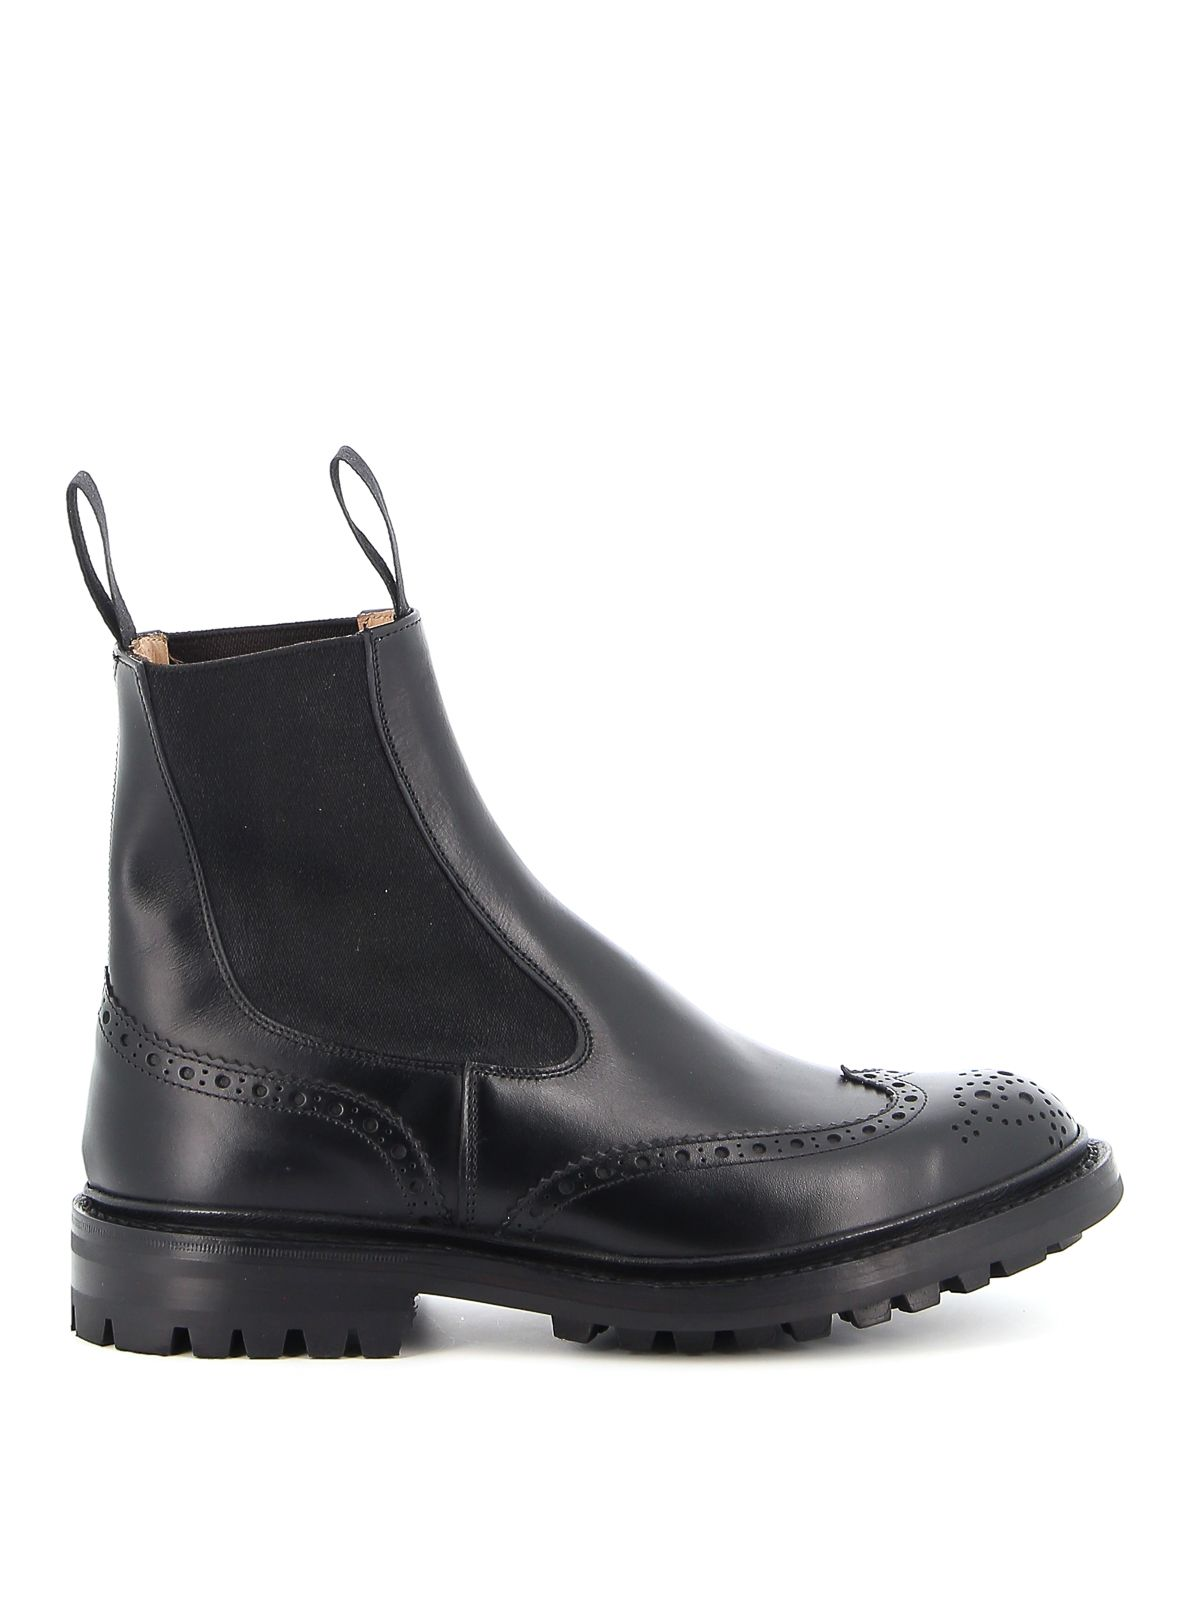 Tricker's TRICKER'S MEN'S BLACK LEATHER ANKLE BOOTS